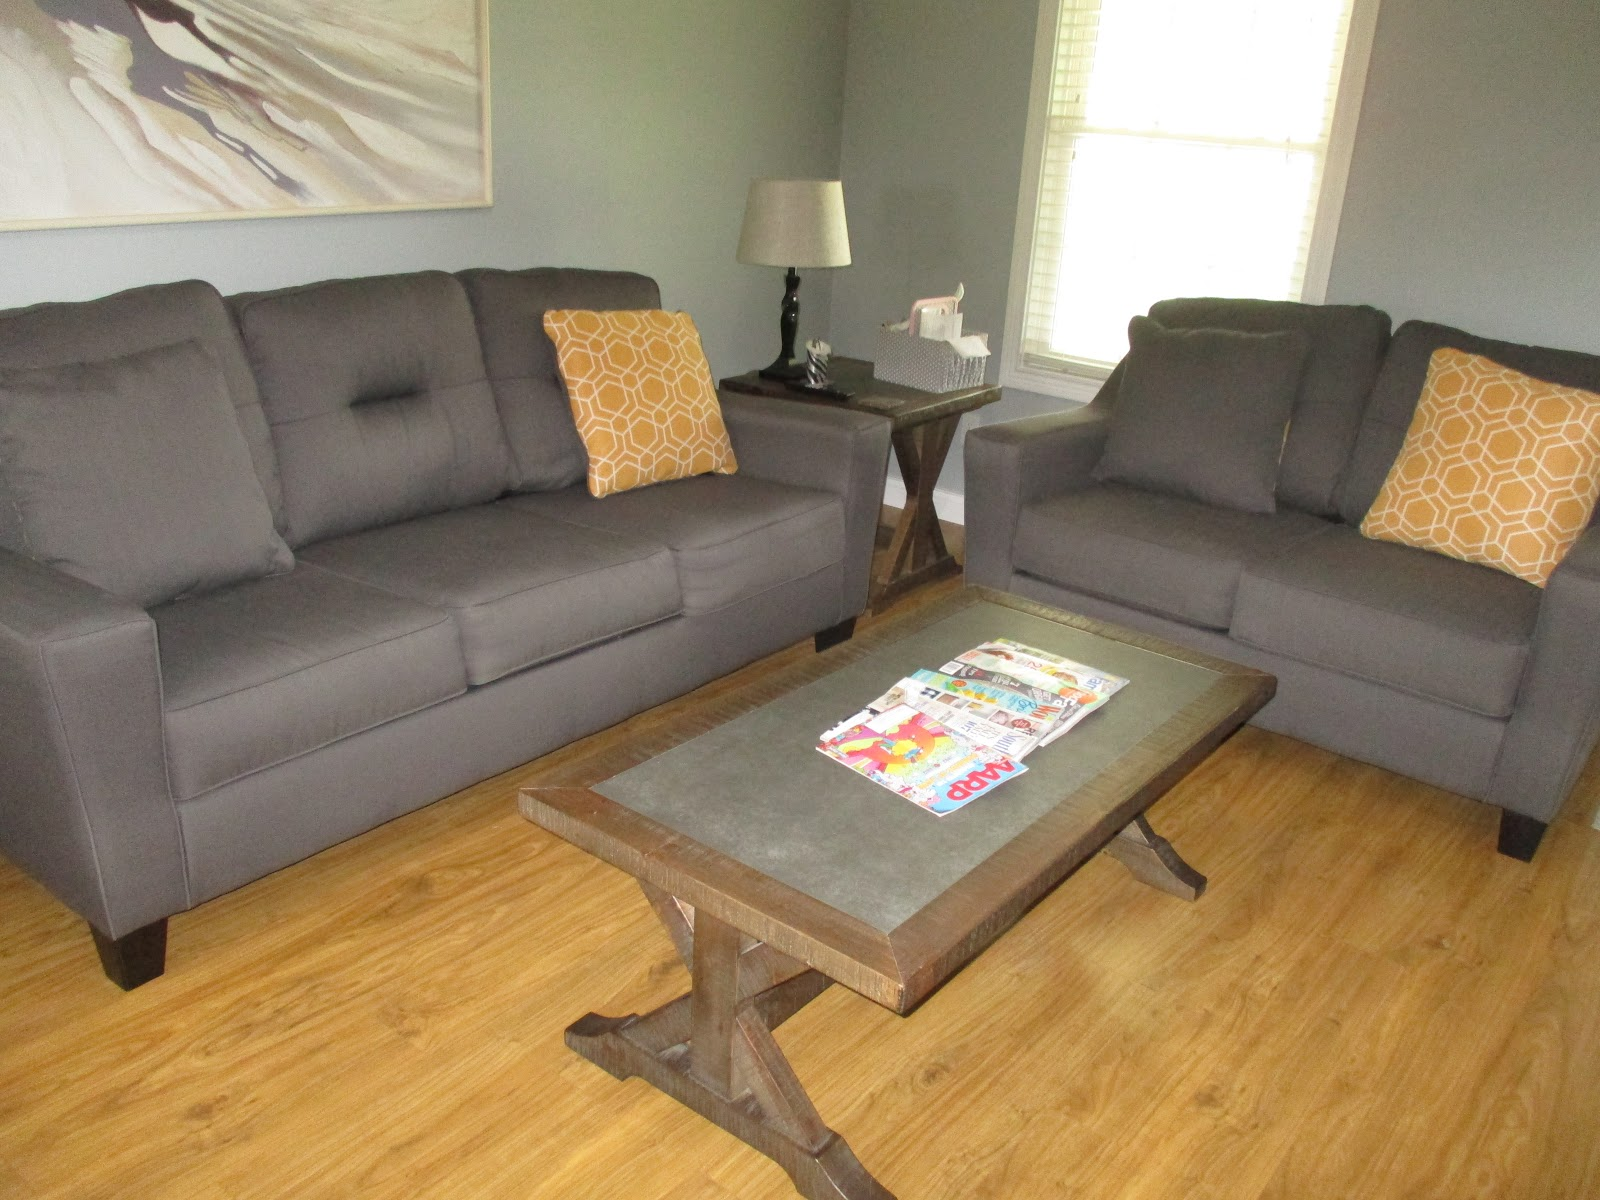 This Is The Cottage Living Room Furniture That I Bought At Corvinu0027s  Furniture. It Is Comfortable And Almost Child Proof.